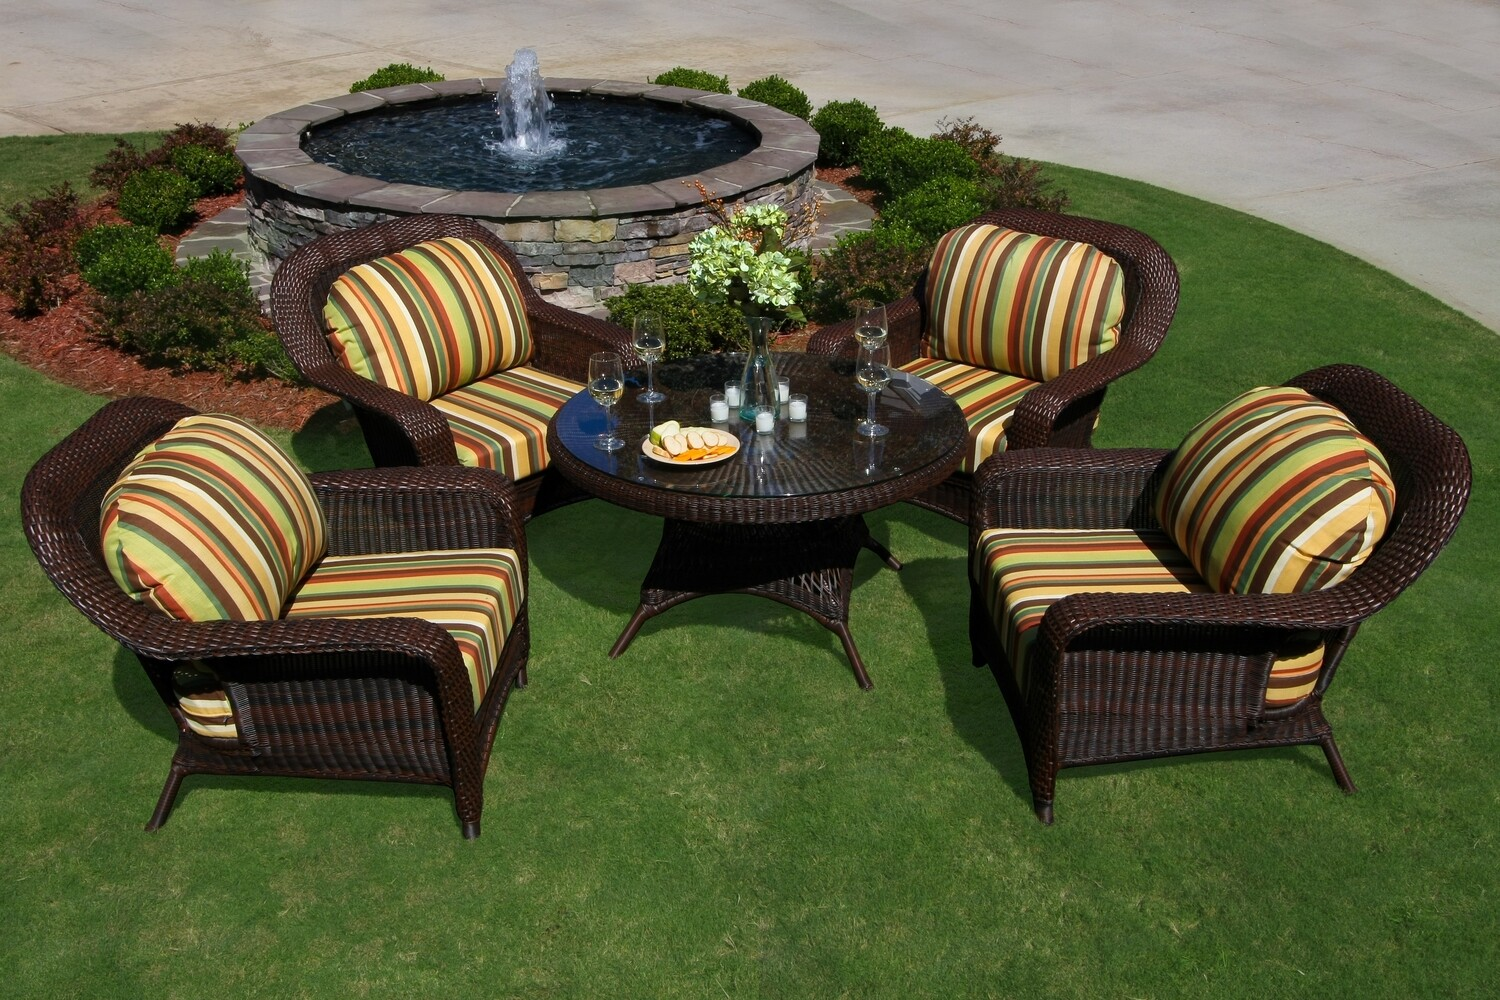 Sea Pines 5 Piece Conversation Set One Conversation Table with 4 Club Chairs